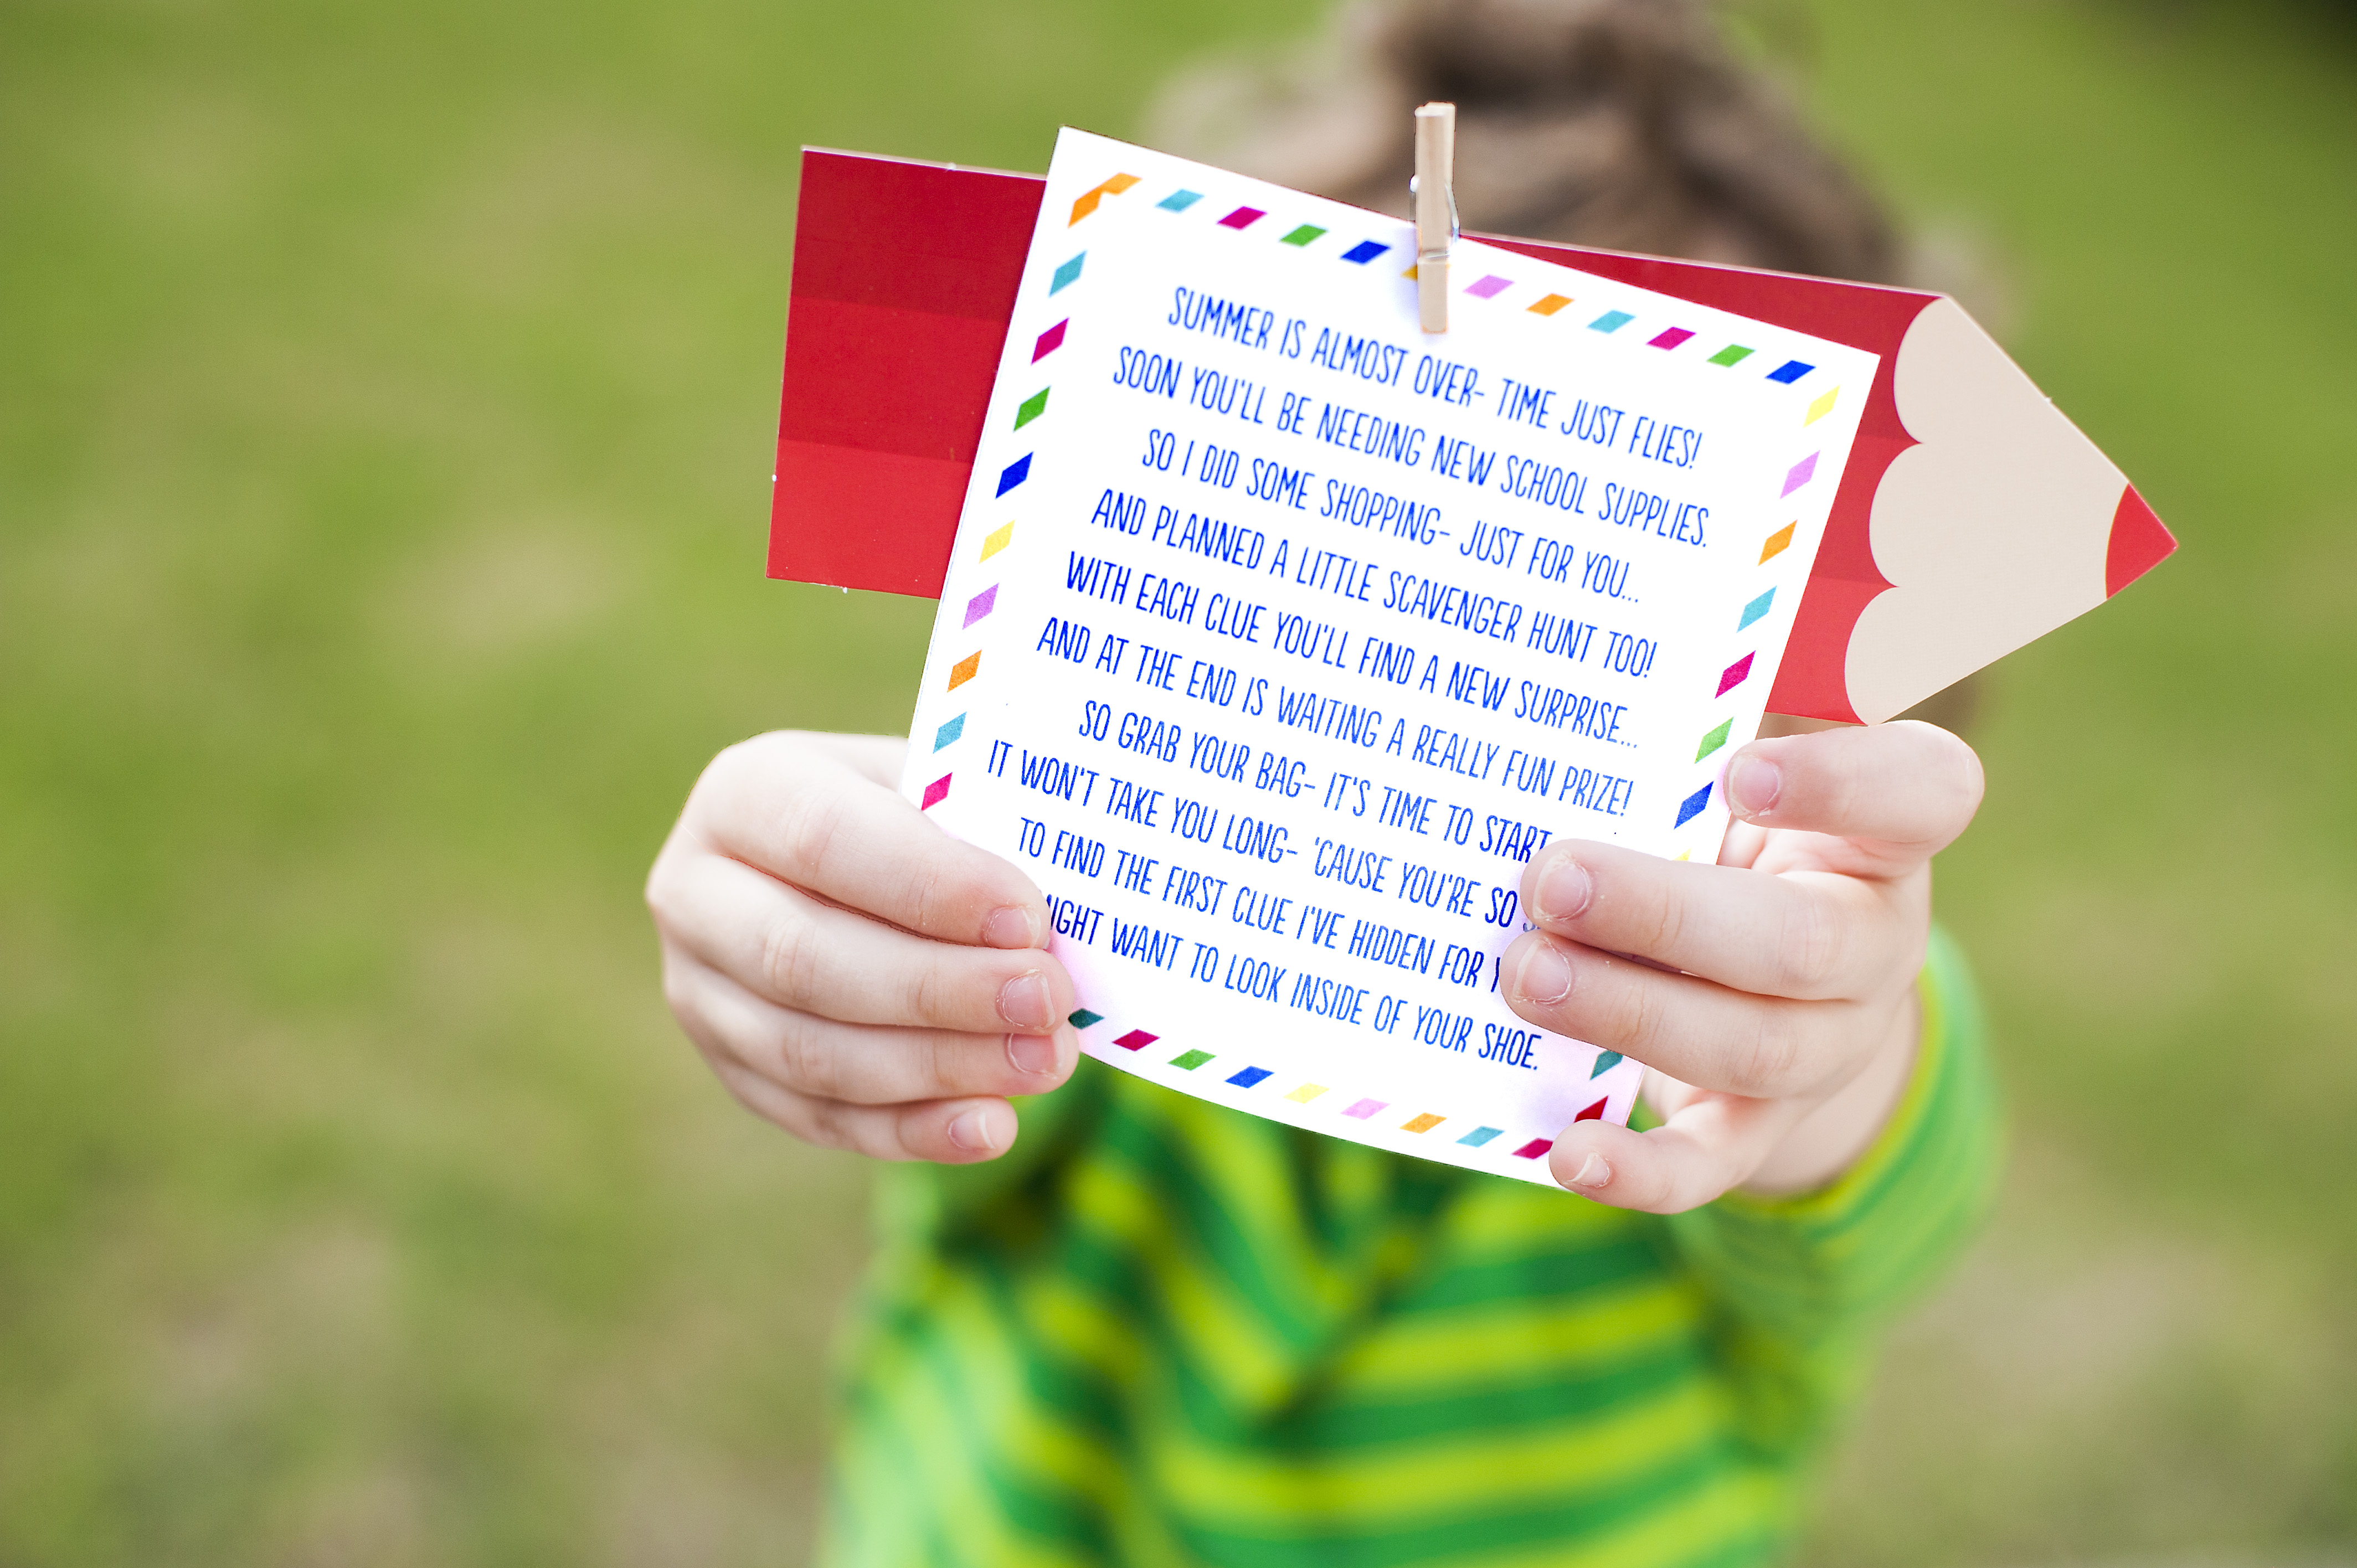 Go on a school supply scavenger hunt for a new school tradition.